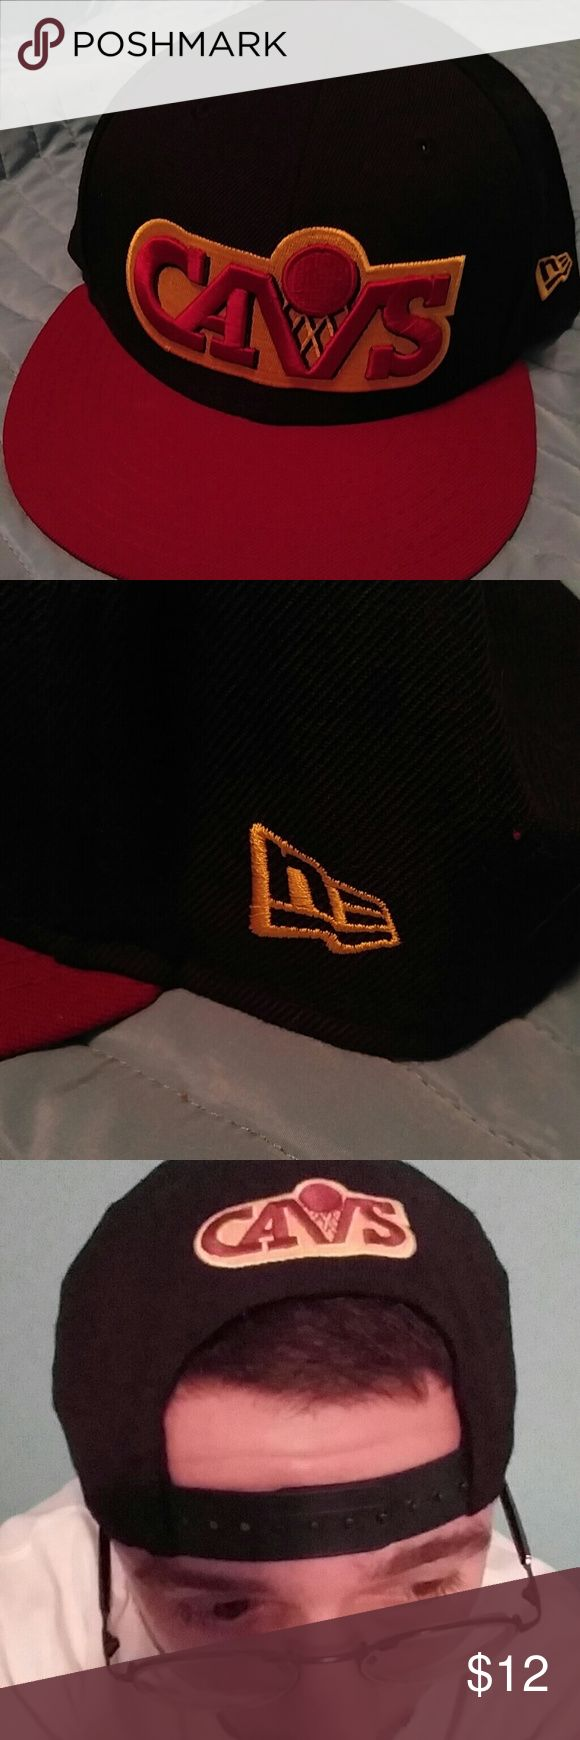 *SALE* New Era Cleveland Cavaliers snapback hat Officially liscensed New Era Cavs hat from their Hardwood Classics line. This is a navy hat, and despite the throwback logo it is true to the Cavs current blue/maroon/gold color scheme. This hat was bought new, barely worn, and is in fantastic shape. New Era Accessories Hats